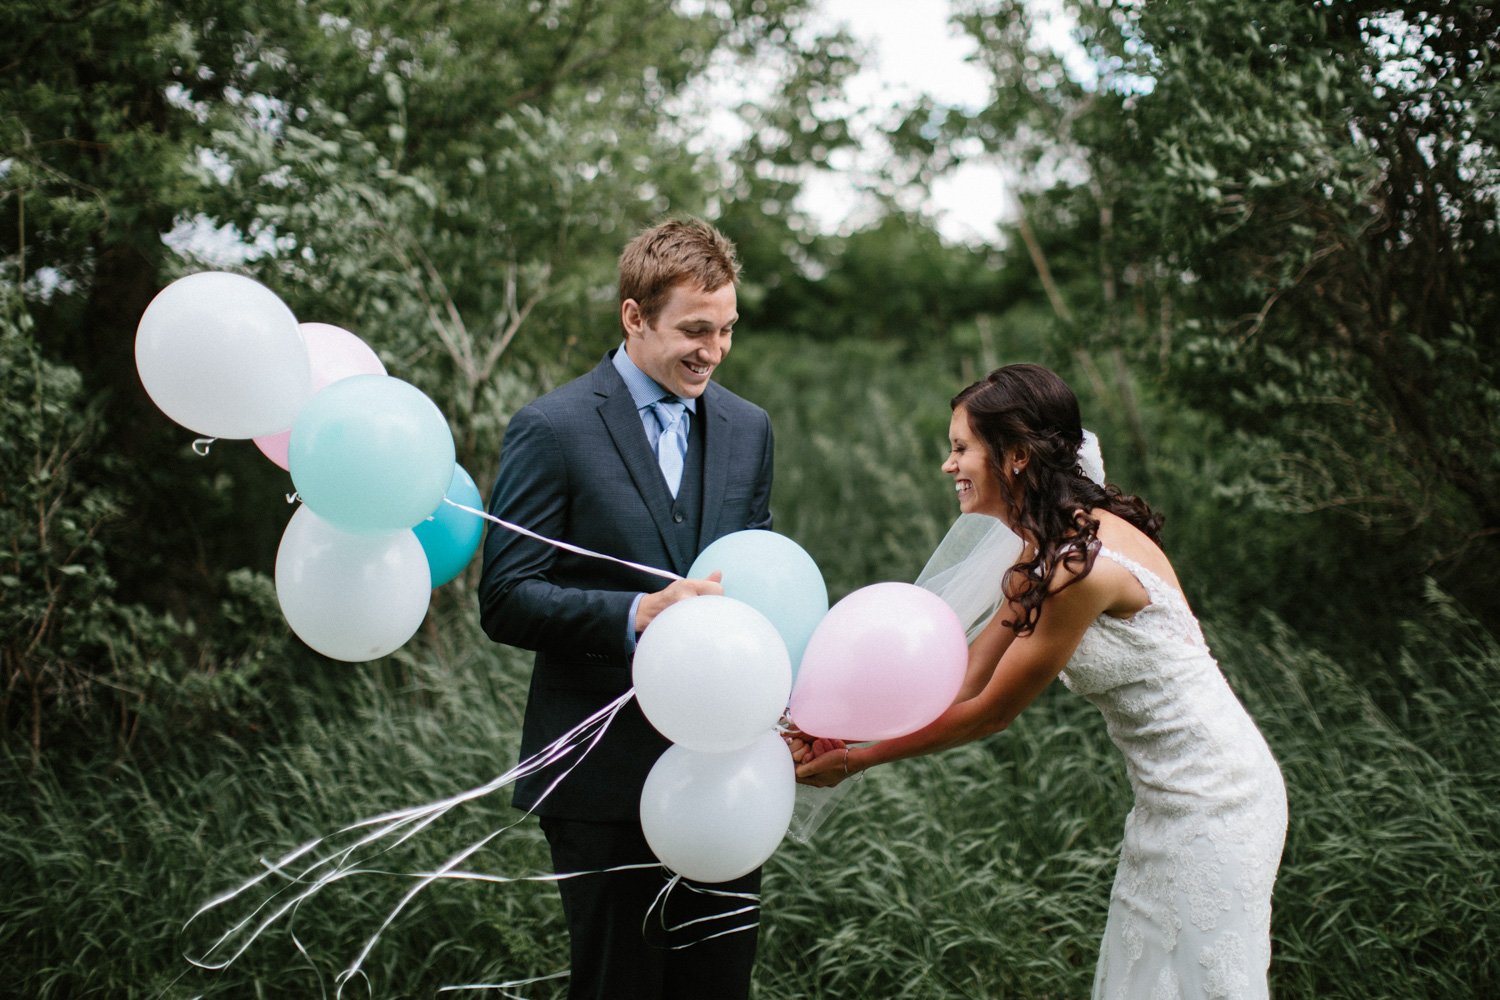 Outdoor_Wedding_SiouxFalls_MaryJoWegnerArboretum_Photographer_Calli&Jon_042.jpg